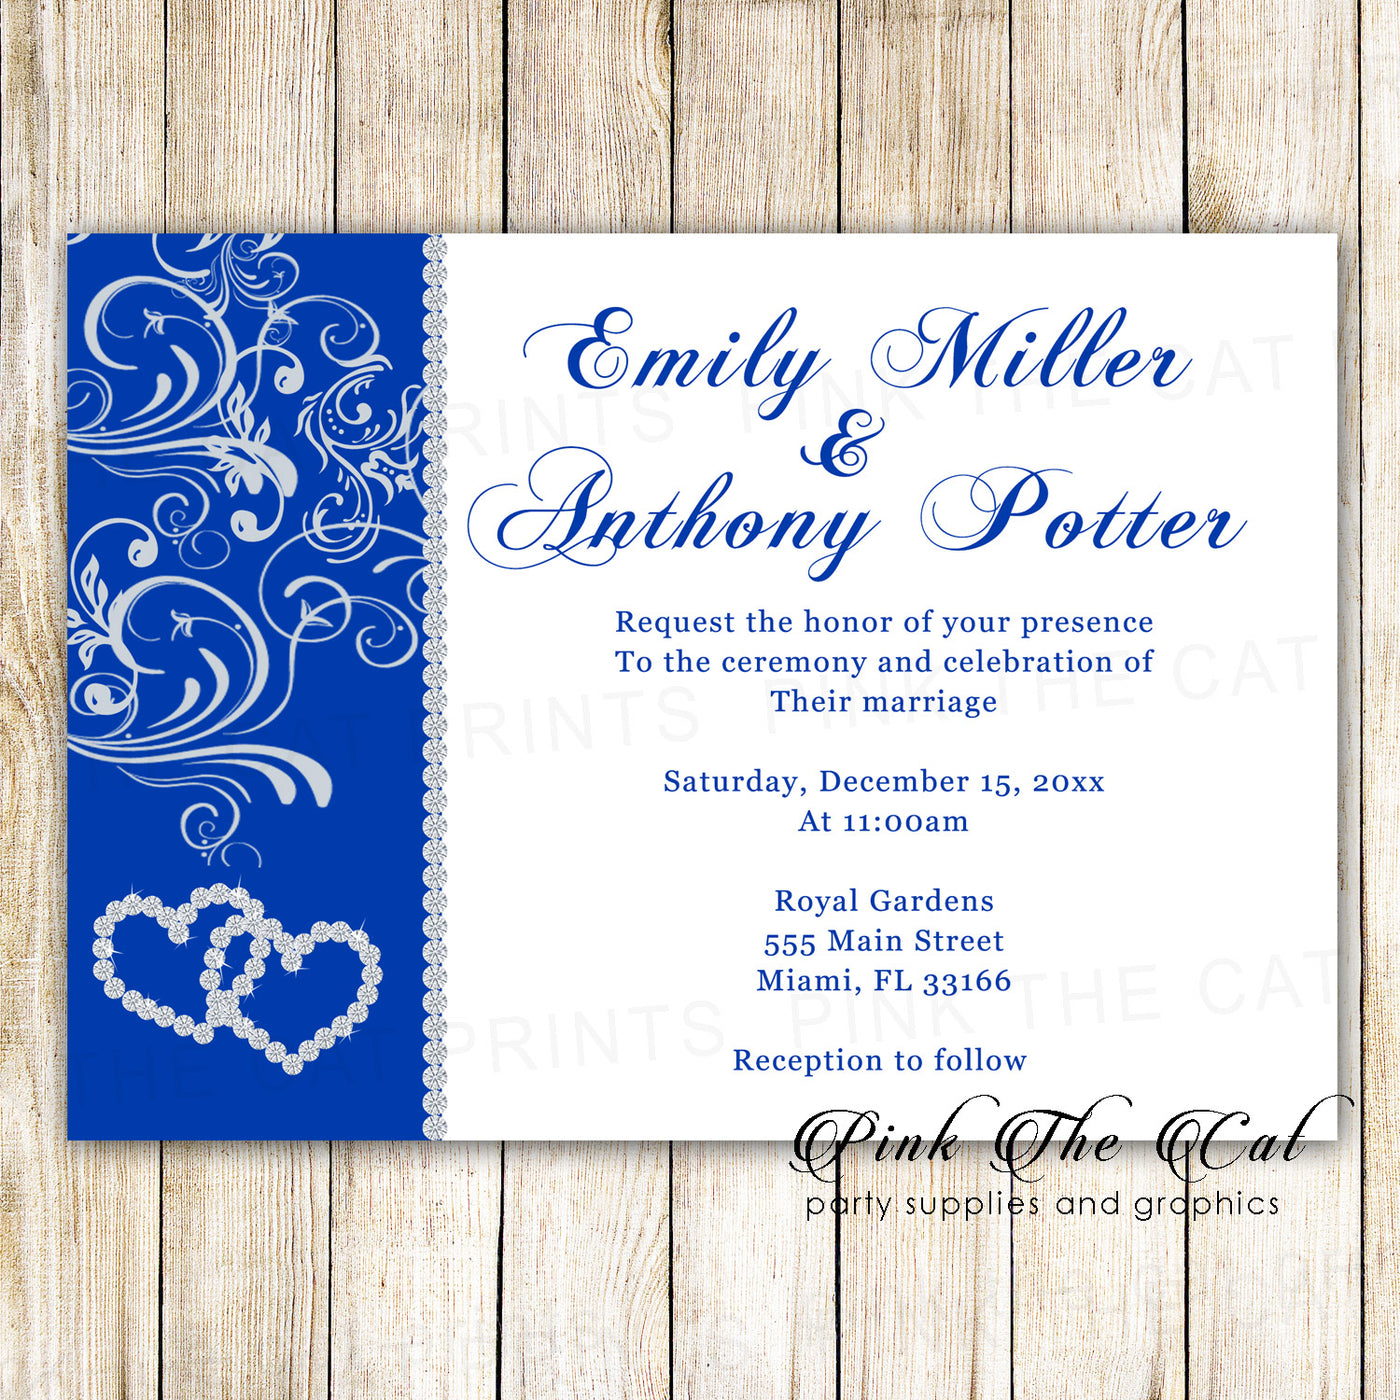 100 Rhinestone Diamond Wedding Invitation Cards Royal Blue Silver